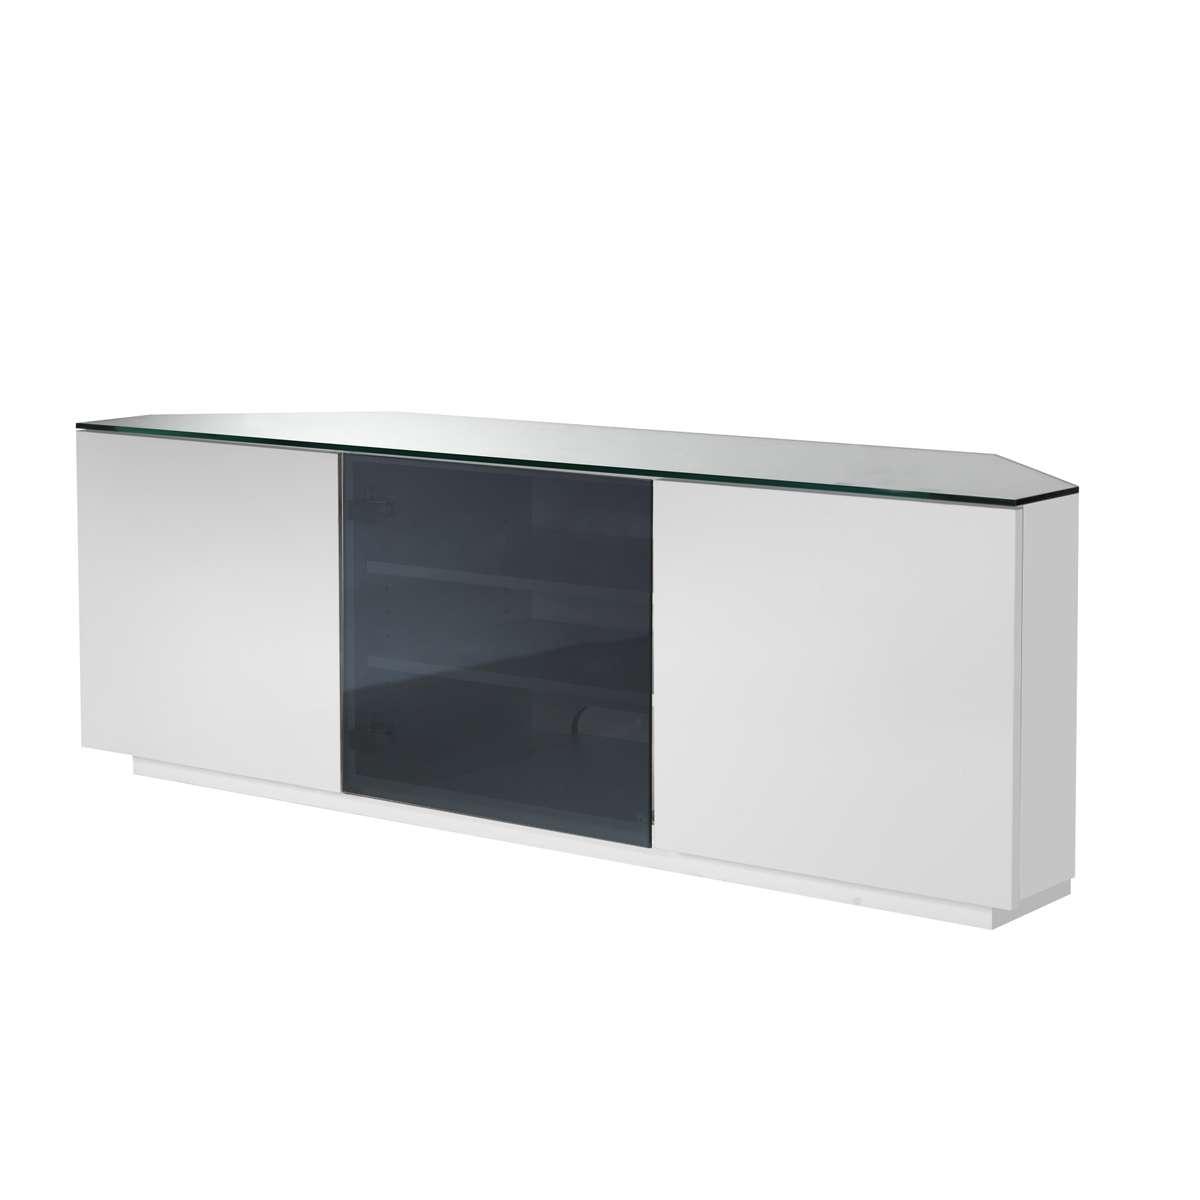 Modern Corner Tv Cabinets • Corner Cabinets Throughout Modern Corner Tv Stands (View 11 of 20)